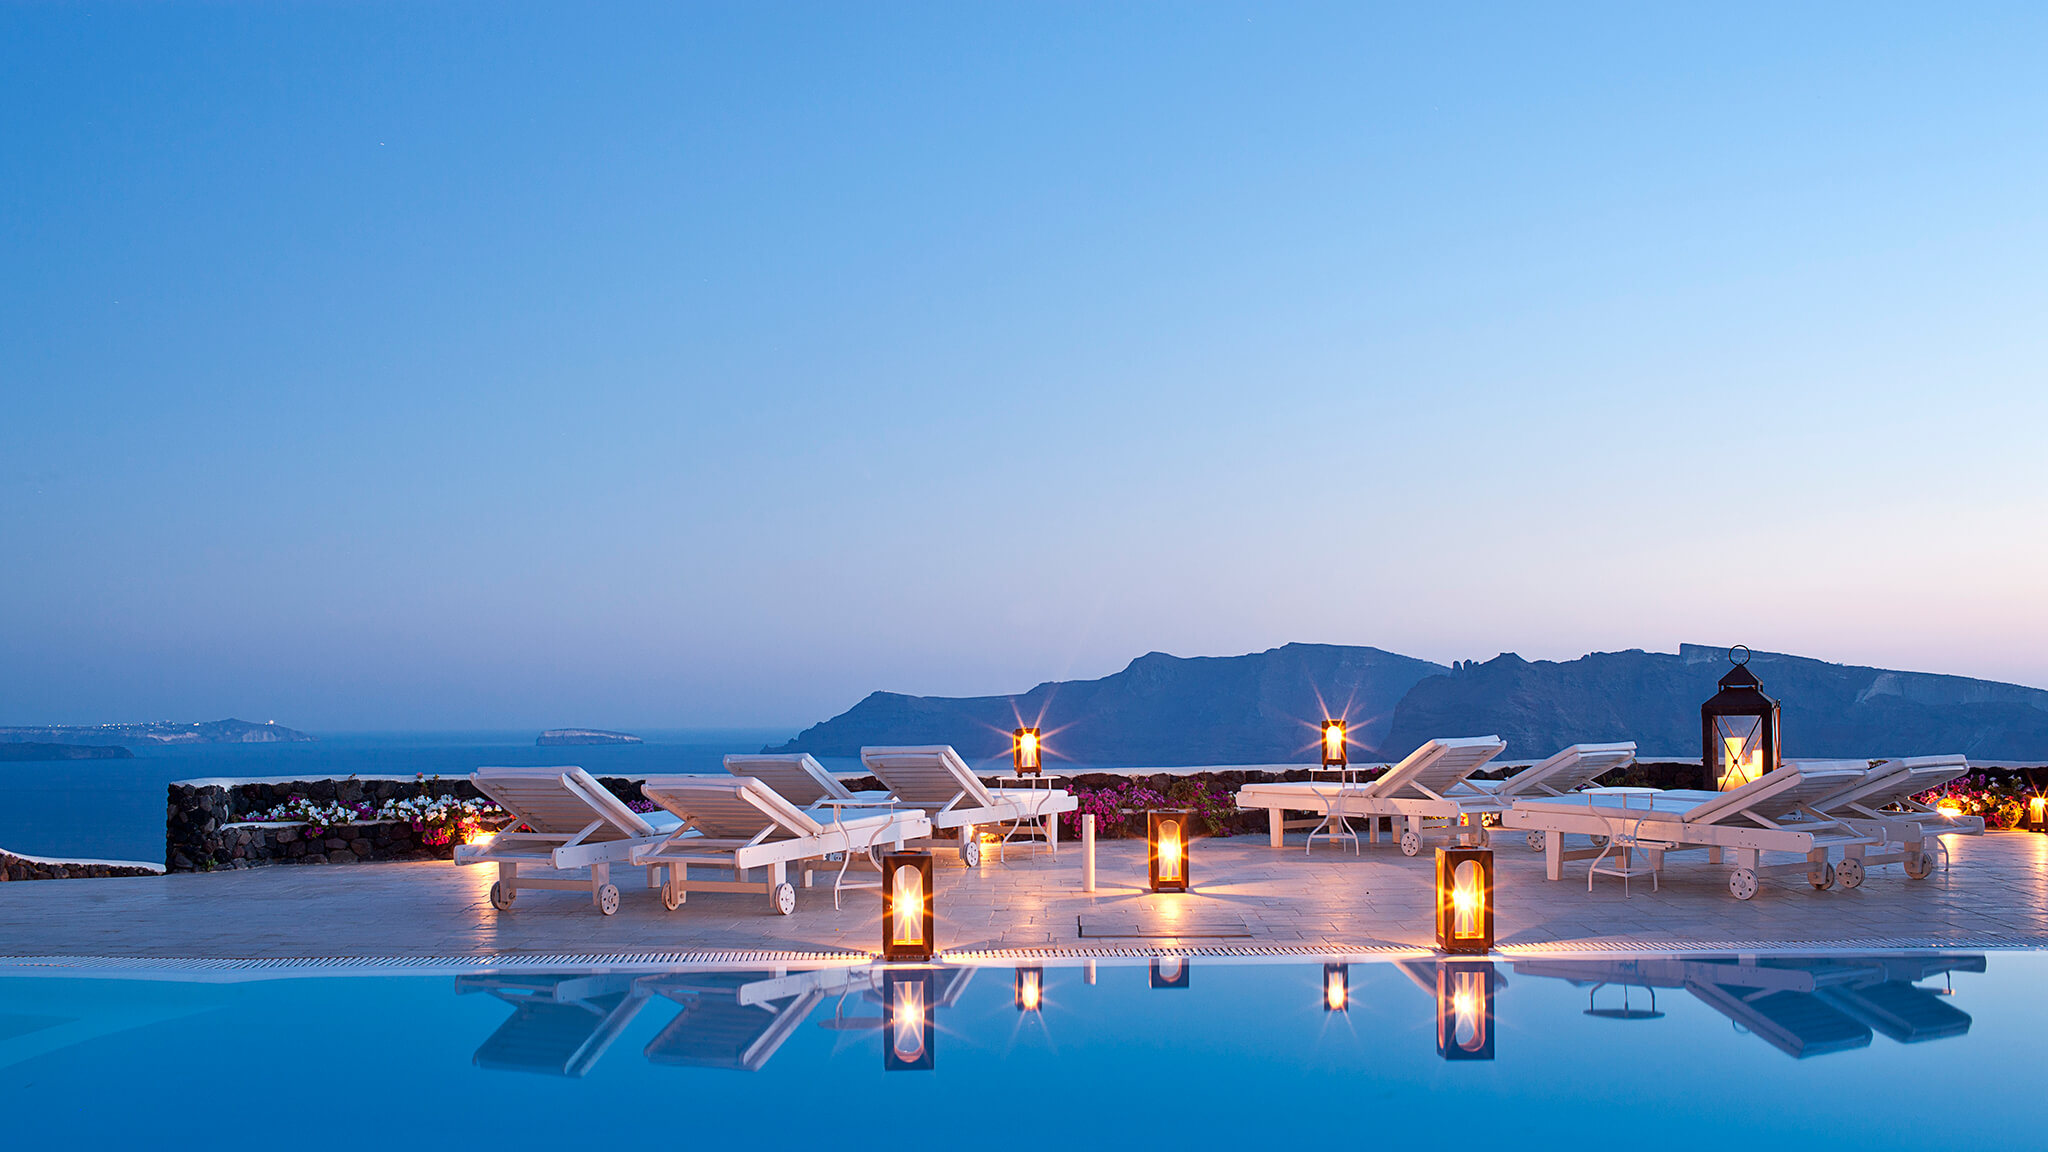 Luxury hotels and luxury resorts visa signature luxury for Luxury hotels all over the world